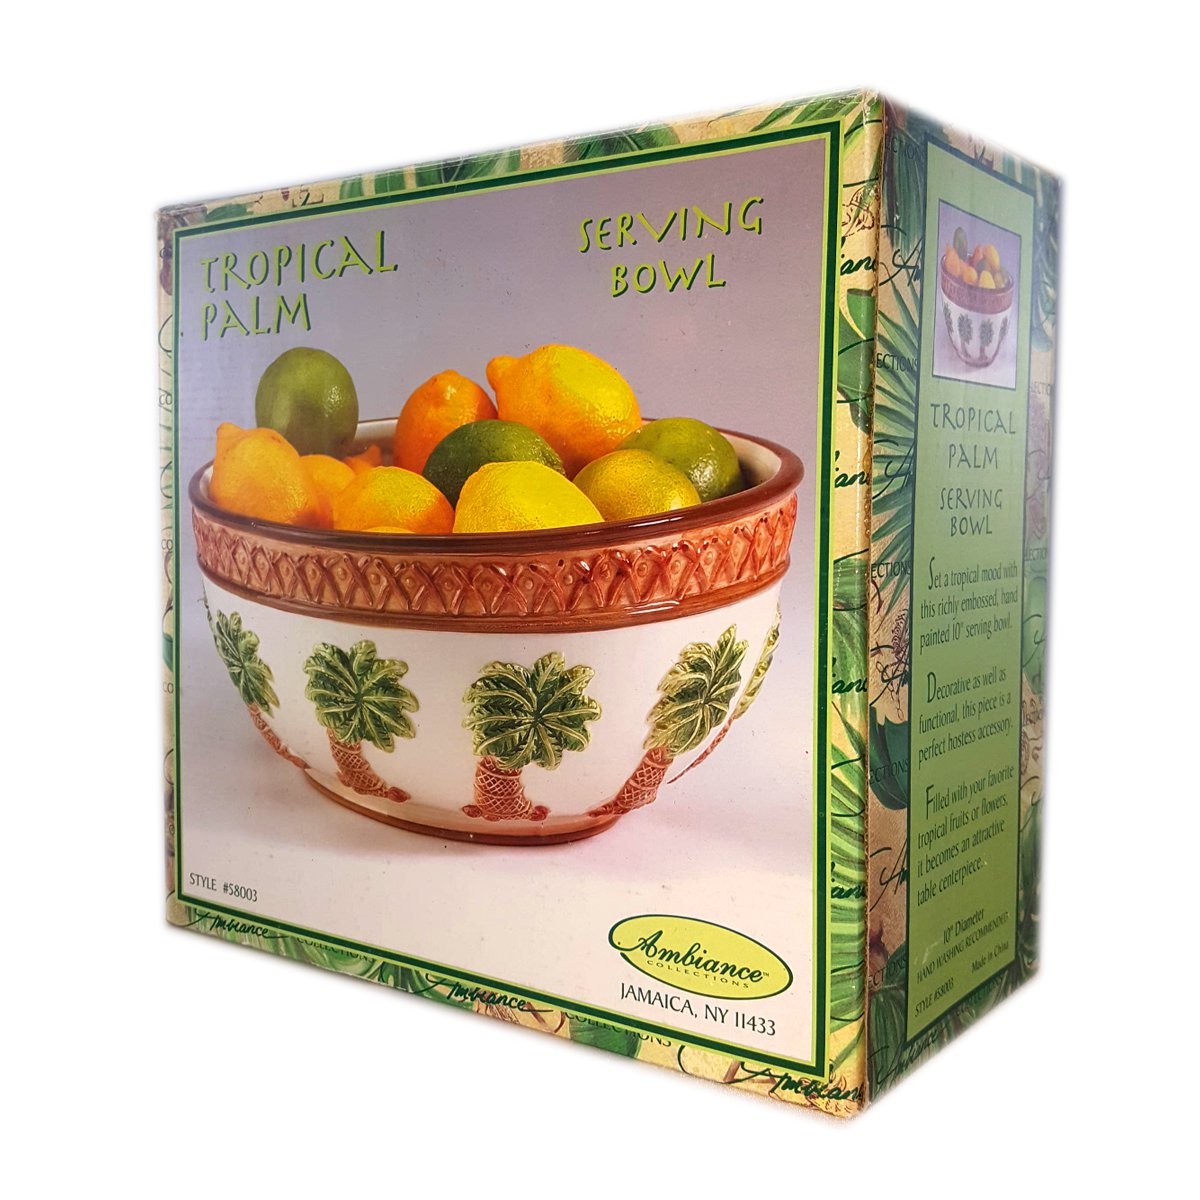 Ambiance Collections Tropical Palm Tree Serving Bowl Section Server No. 58003 by Ambiance